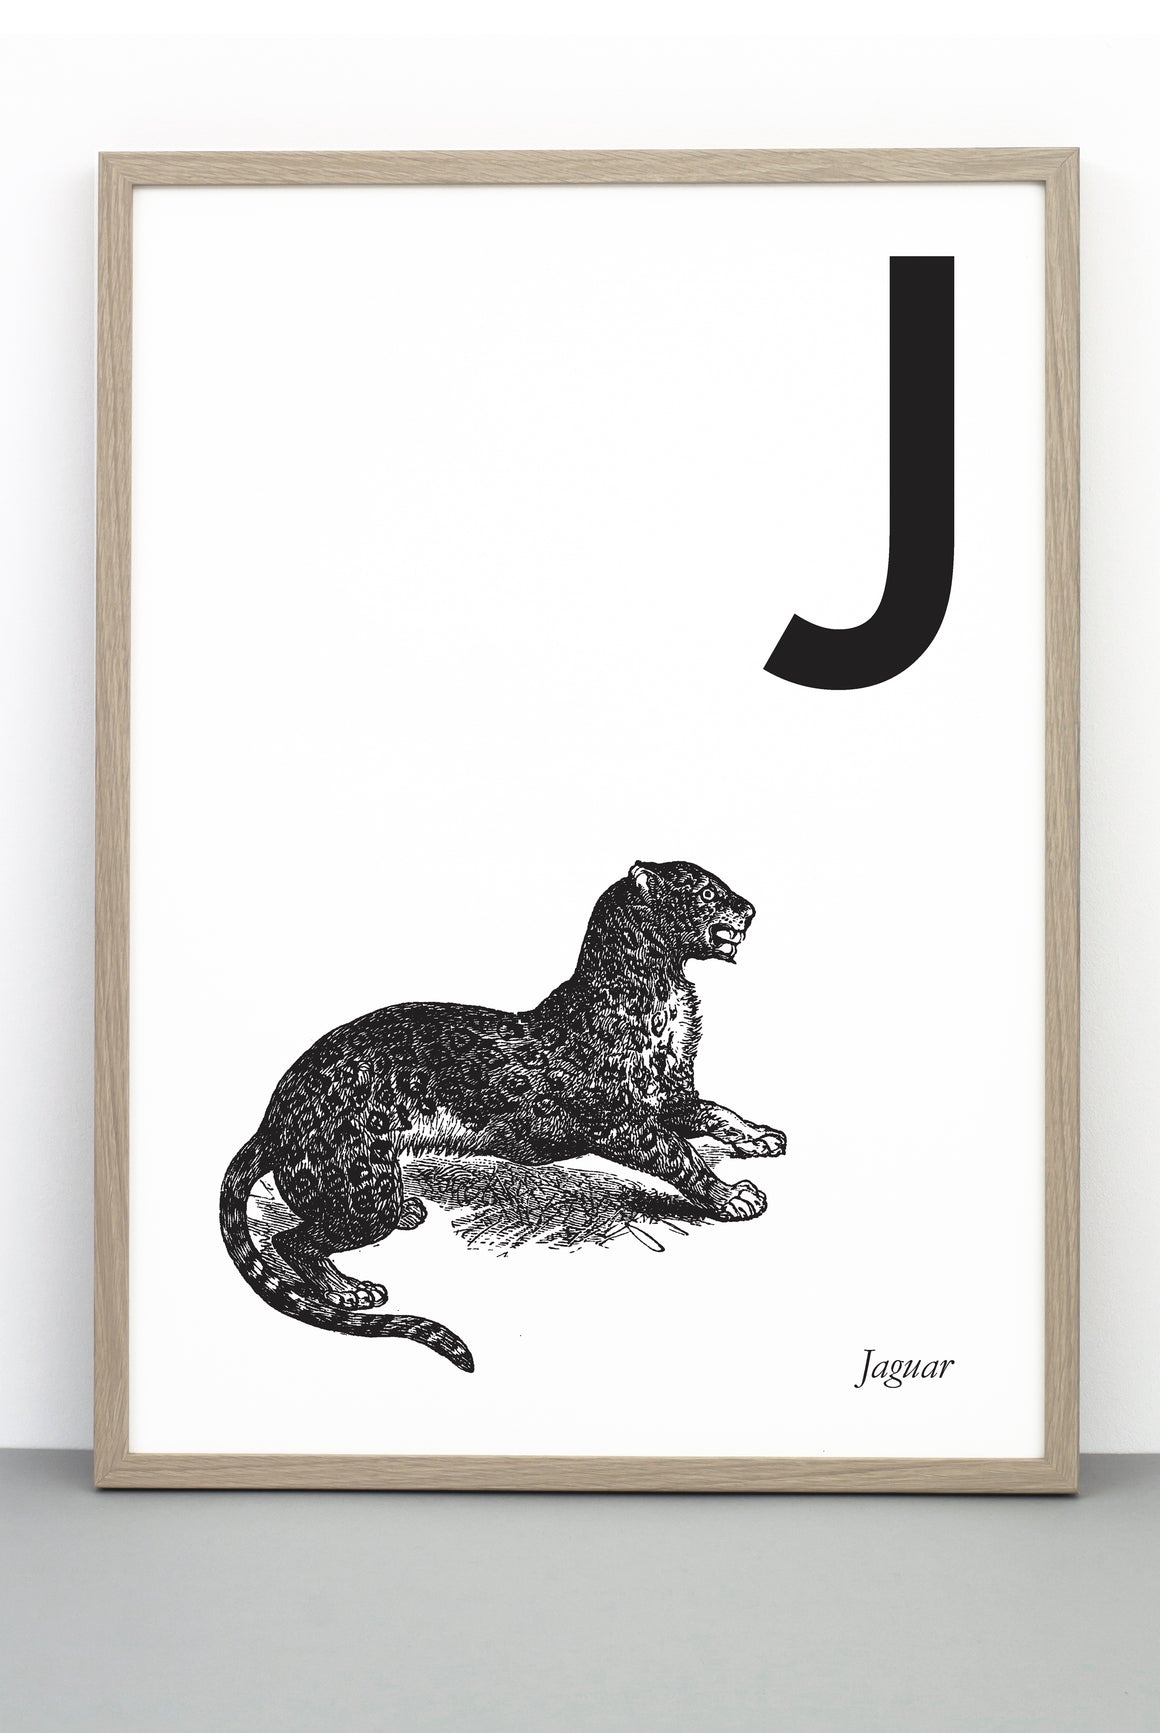 ANIMAL LETTER J, JAGUAR, J DOWNLOADABLE PRINT